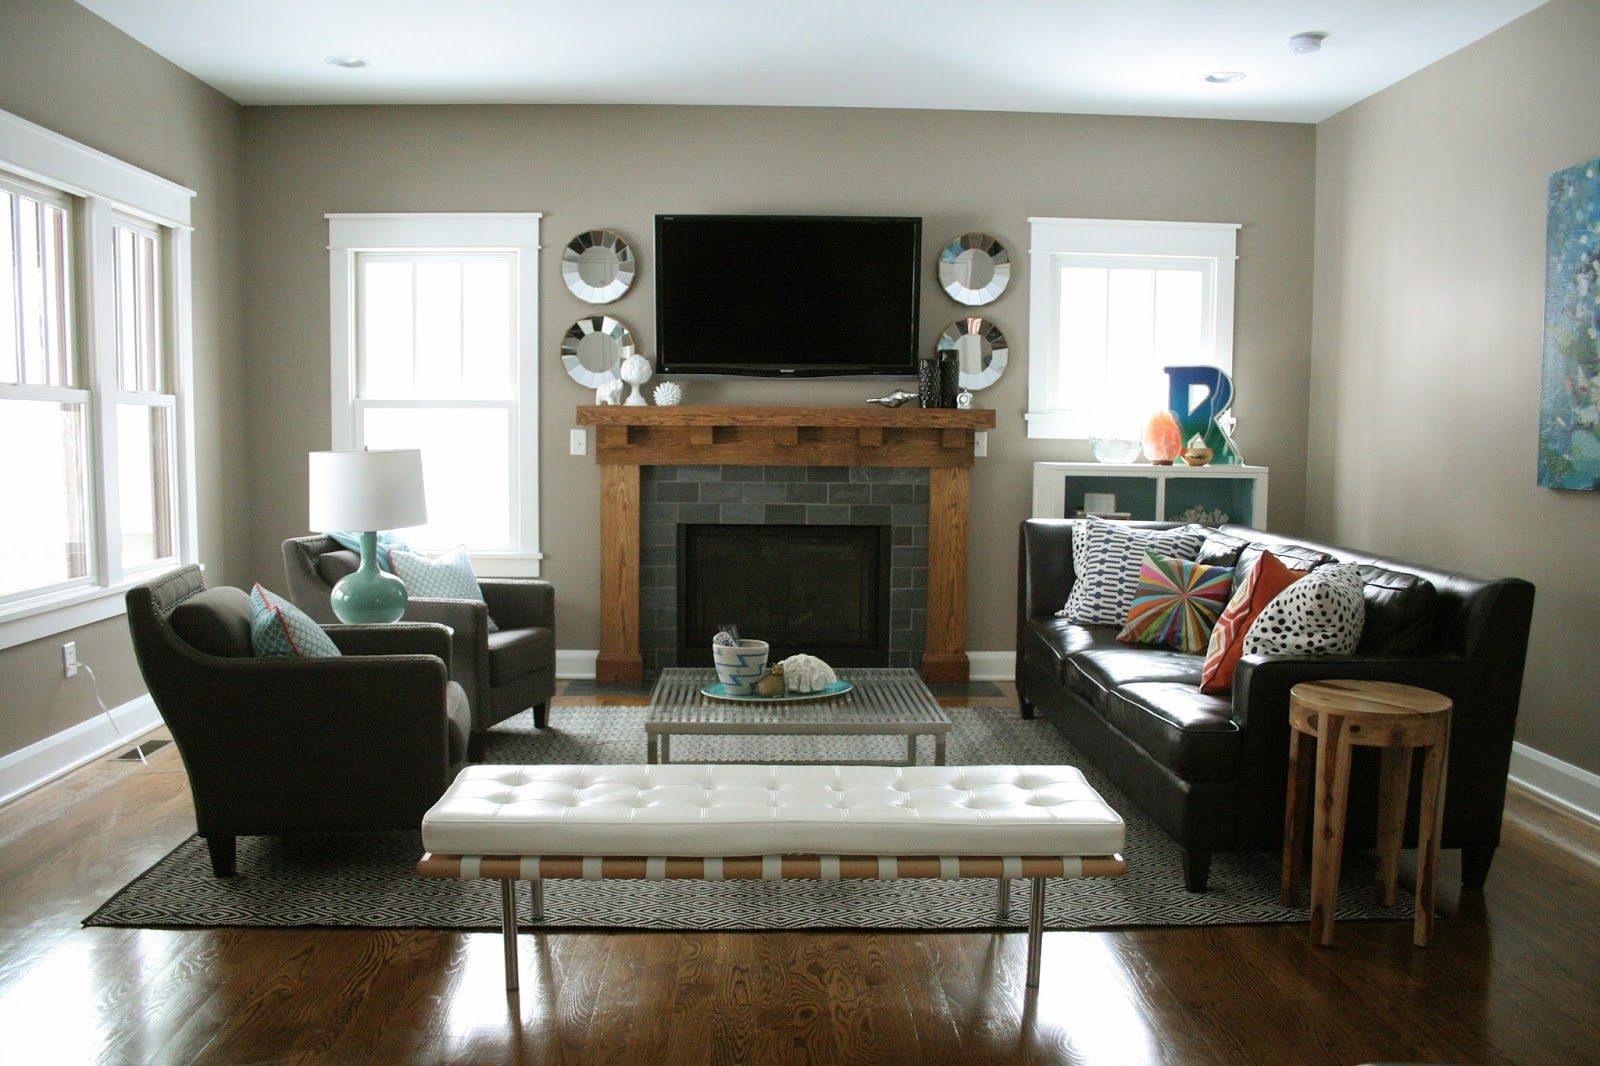 Small living room layout ideas with fireplace best for Arrange a room with dimensions